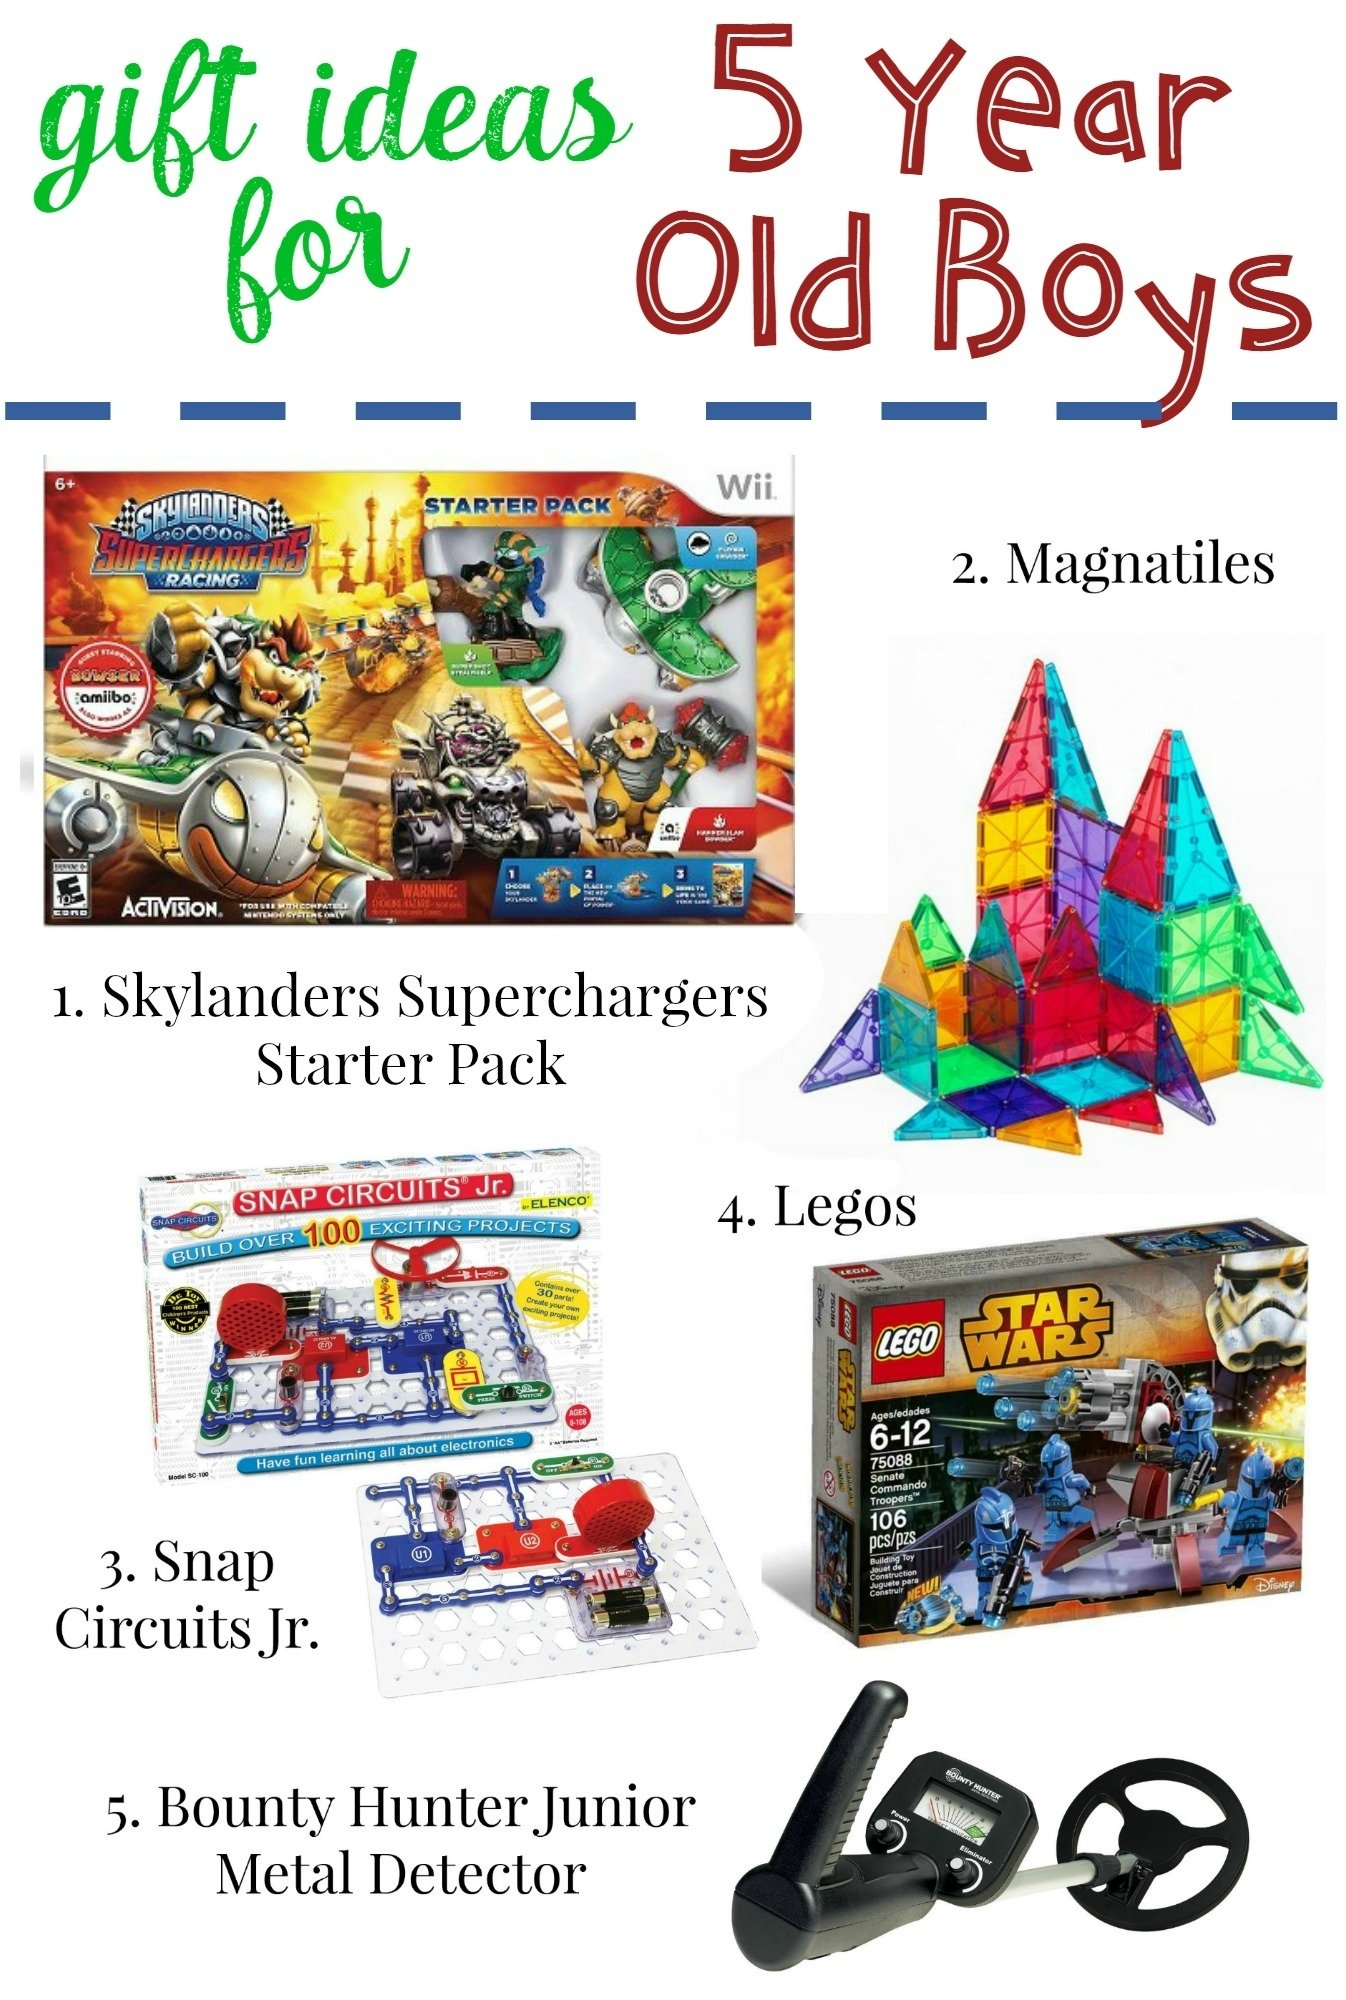 10 Most Popular Gift Ideas For A 6 Year Old Boy gifts for 5 year old boys 3 2020